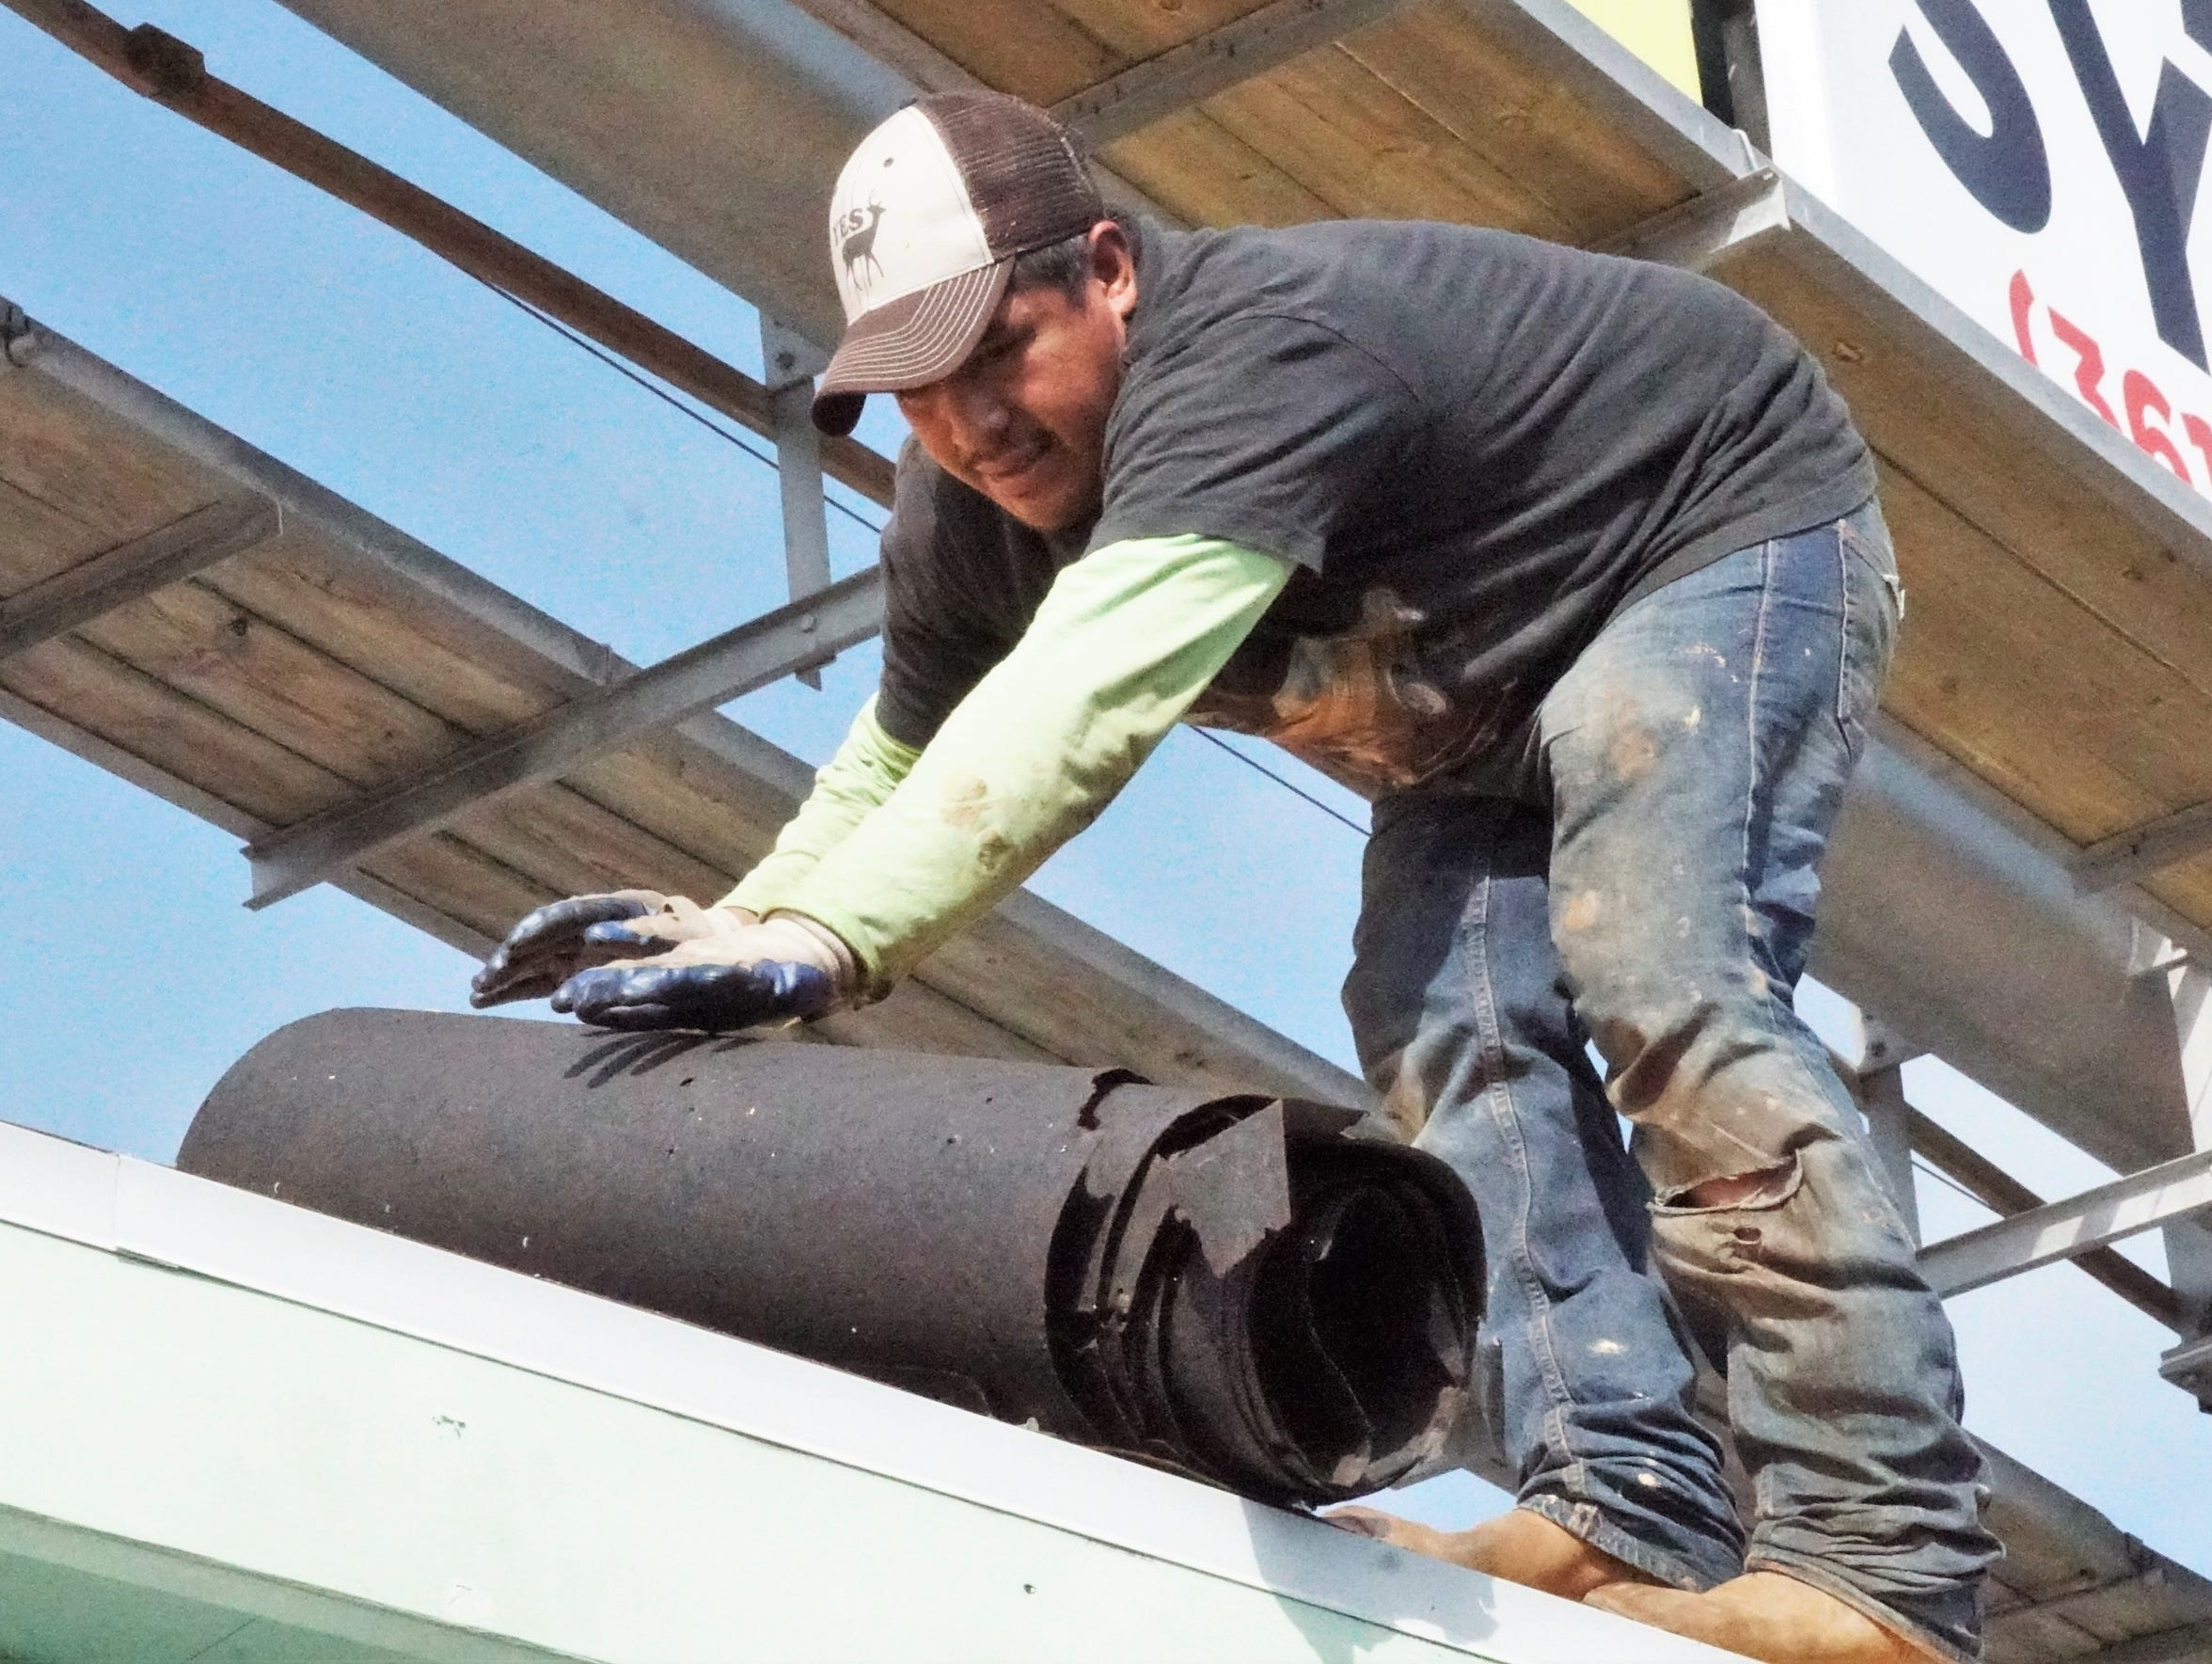 A worker rolls up tattered roofing material that is